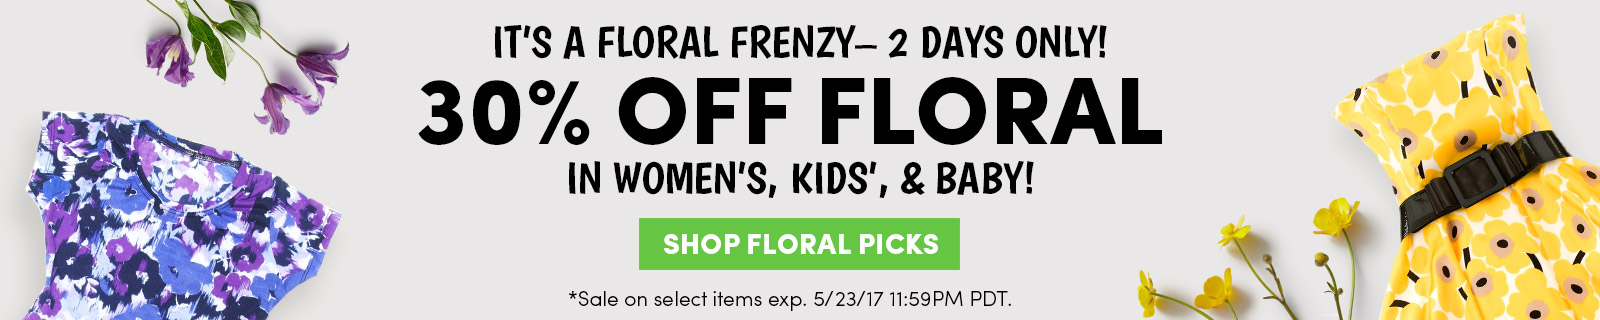 It's a floral frenzy - 2 days only! 30% off Women's, Kids' and Baby. | Shop Floral Picks